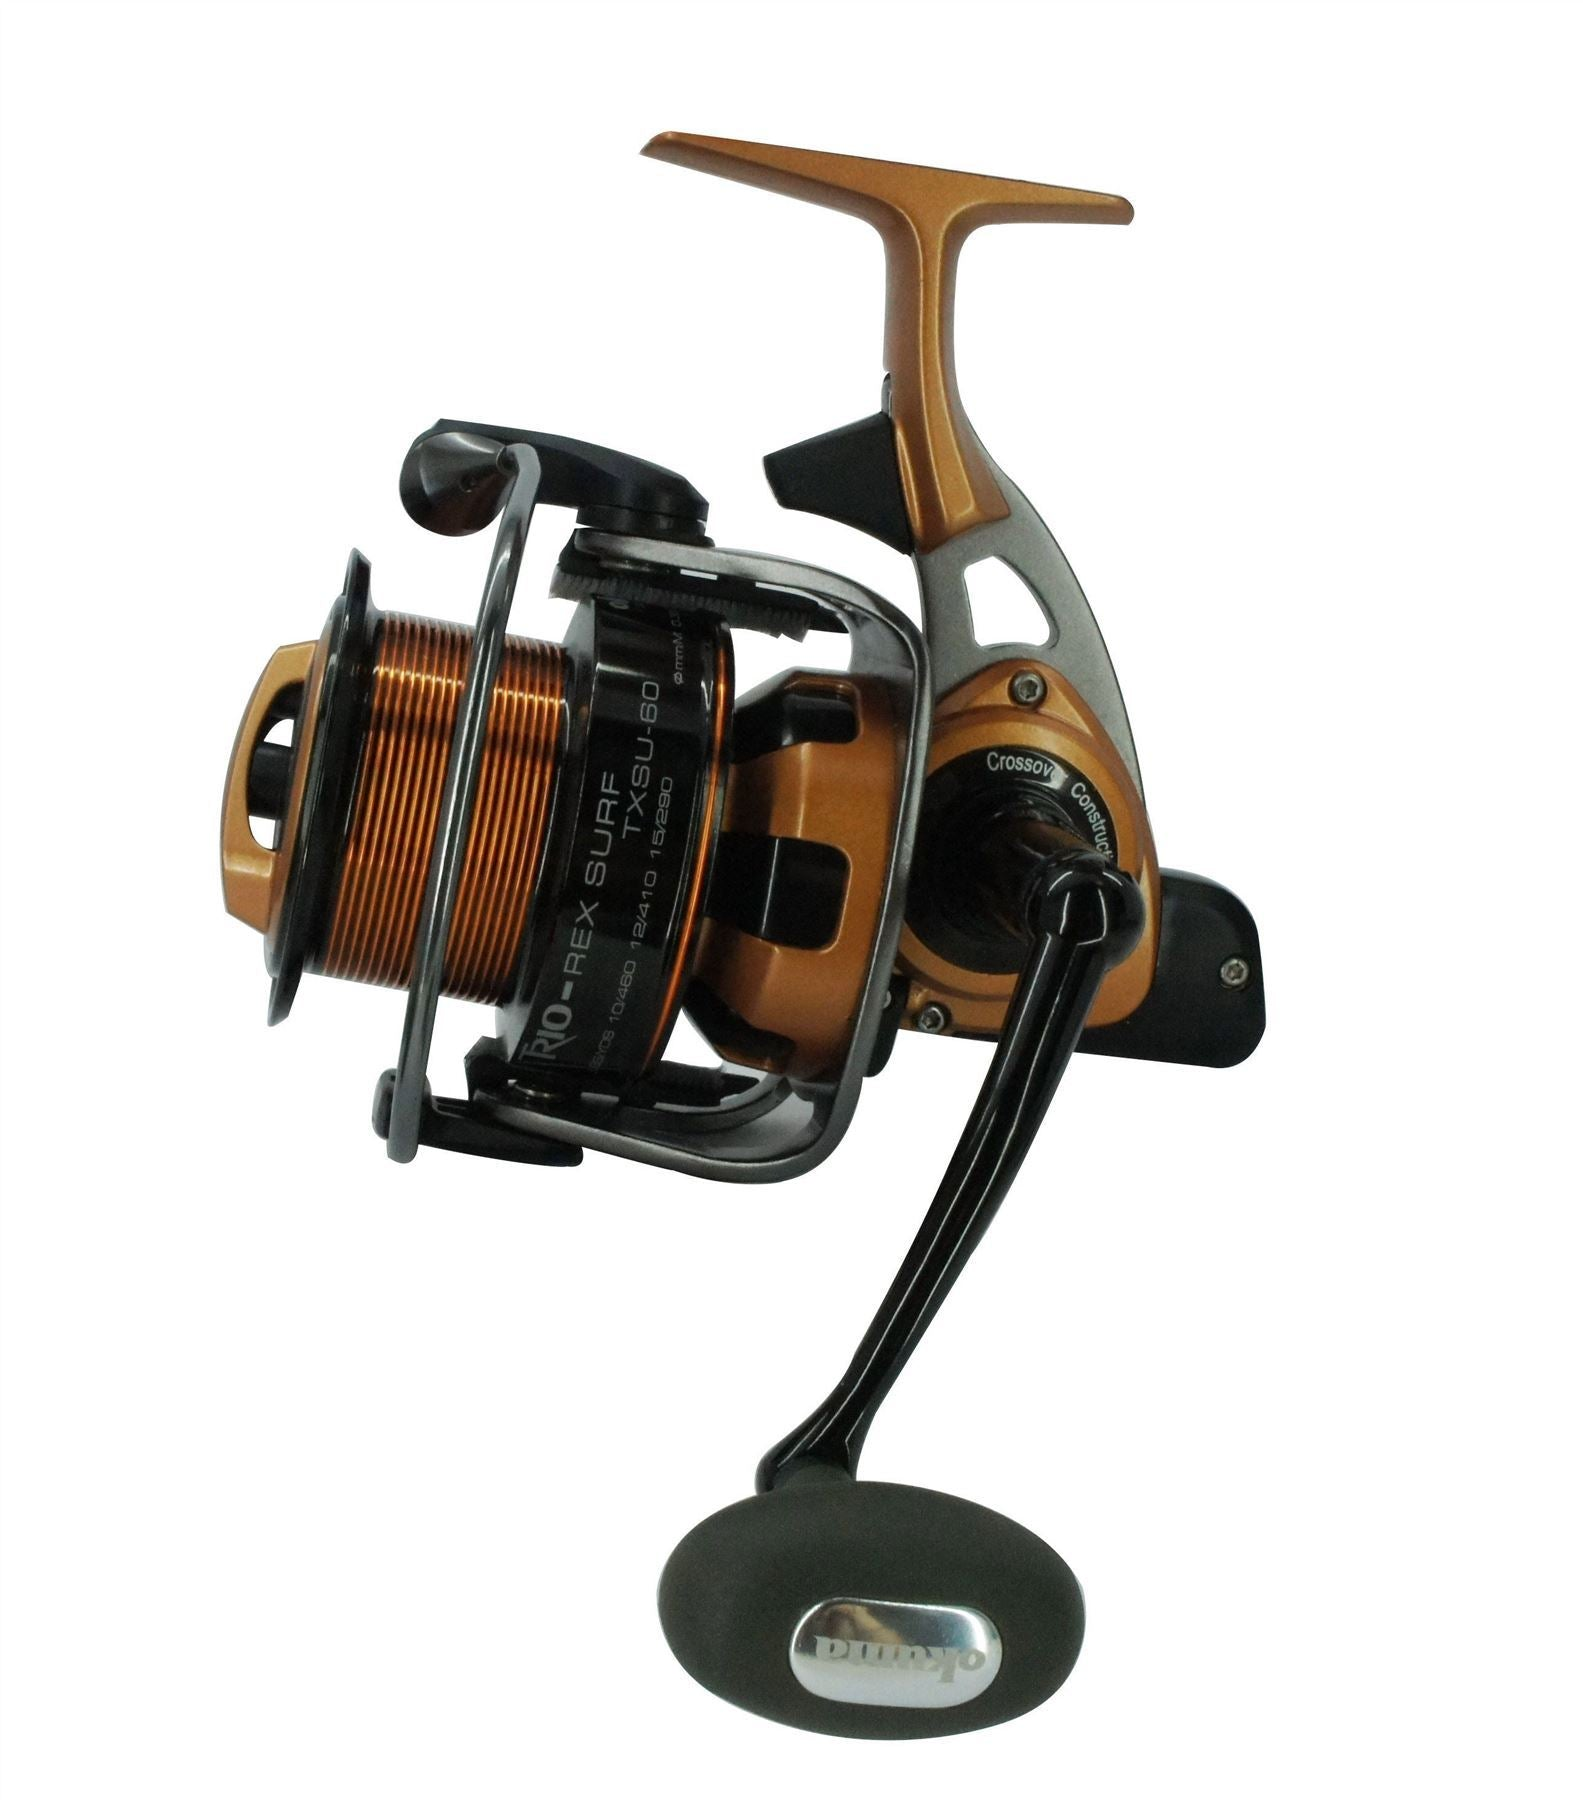 Okuma Trio Rex Surf-TXSU-60 FD 4+1bb Carp/Surf Reel - reid outdoors